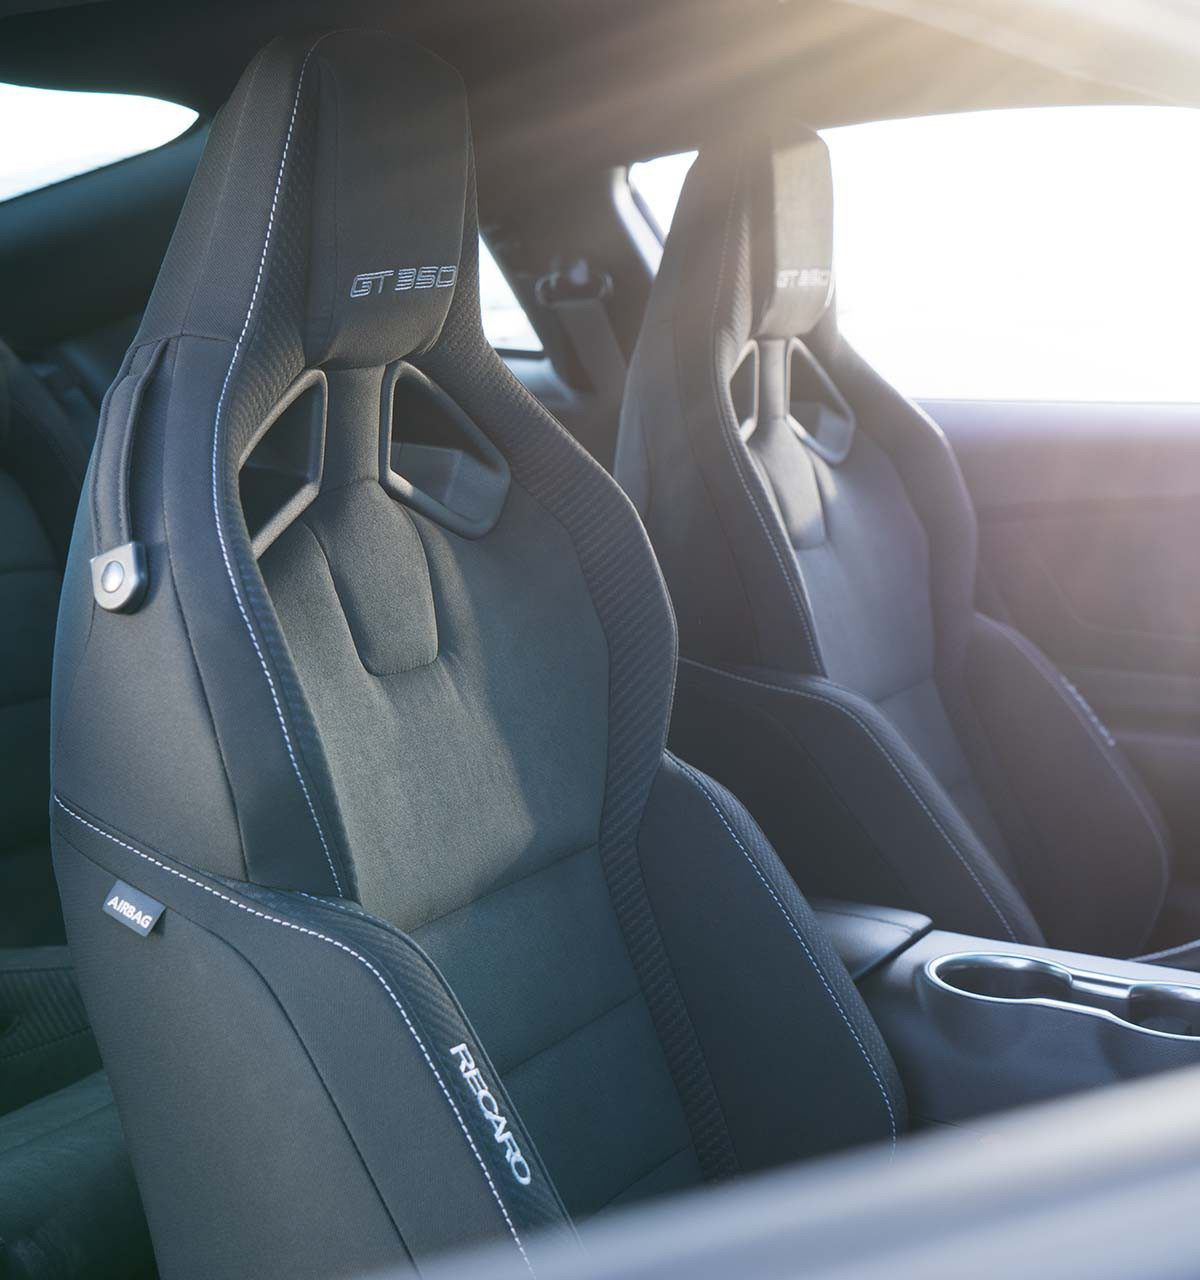 Shelby Gt350 Interior The Shelby Gt350 Interior Is As Sporty Inside As It Is Outside Recaro Cloth Seats Wi Ford Mustang Ford Mustang 2016 2017 Ford Mustang